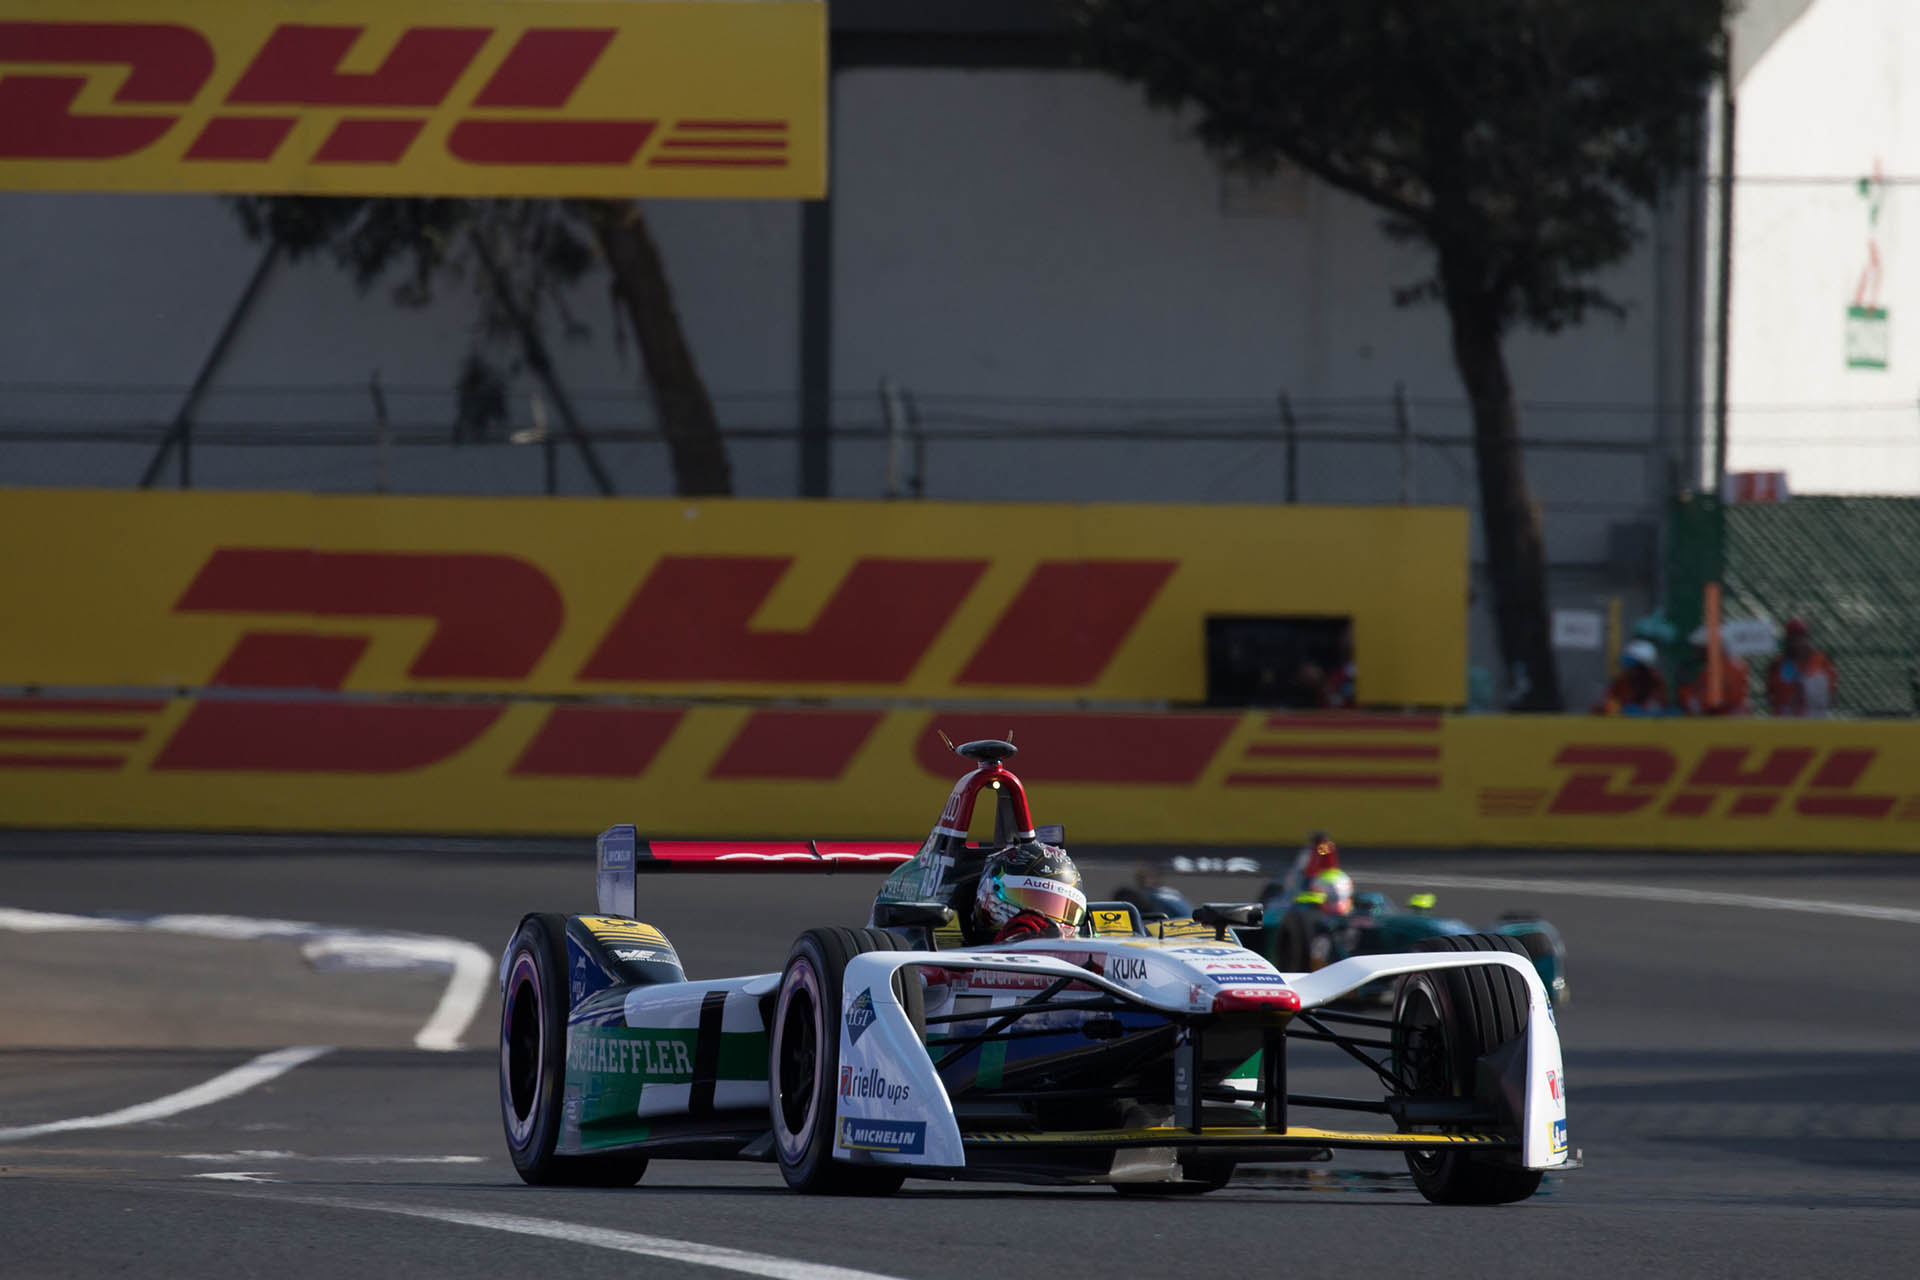 Daniel Abt on his way to victory in Mexico City